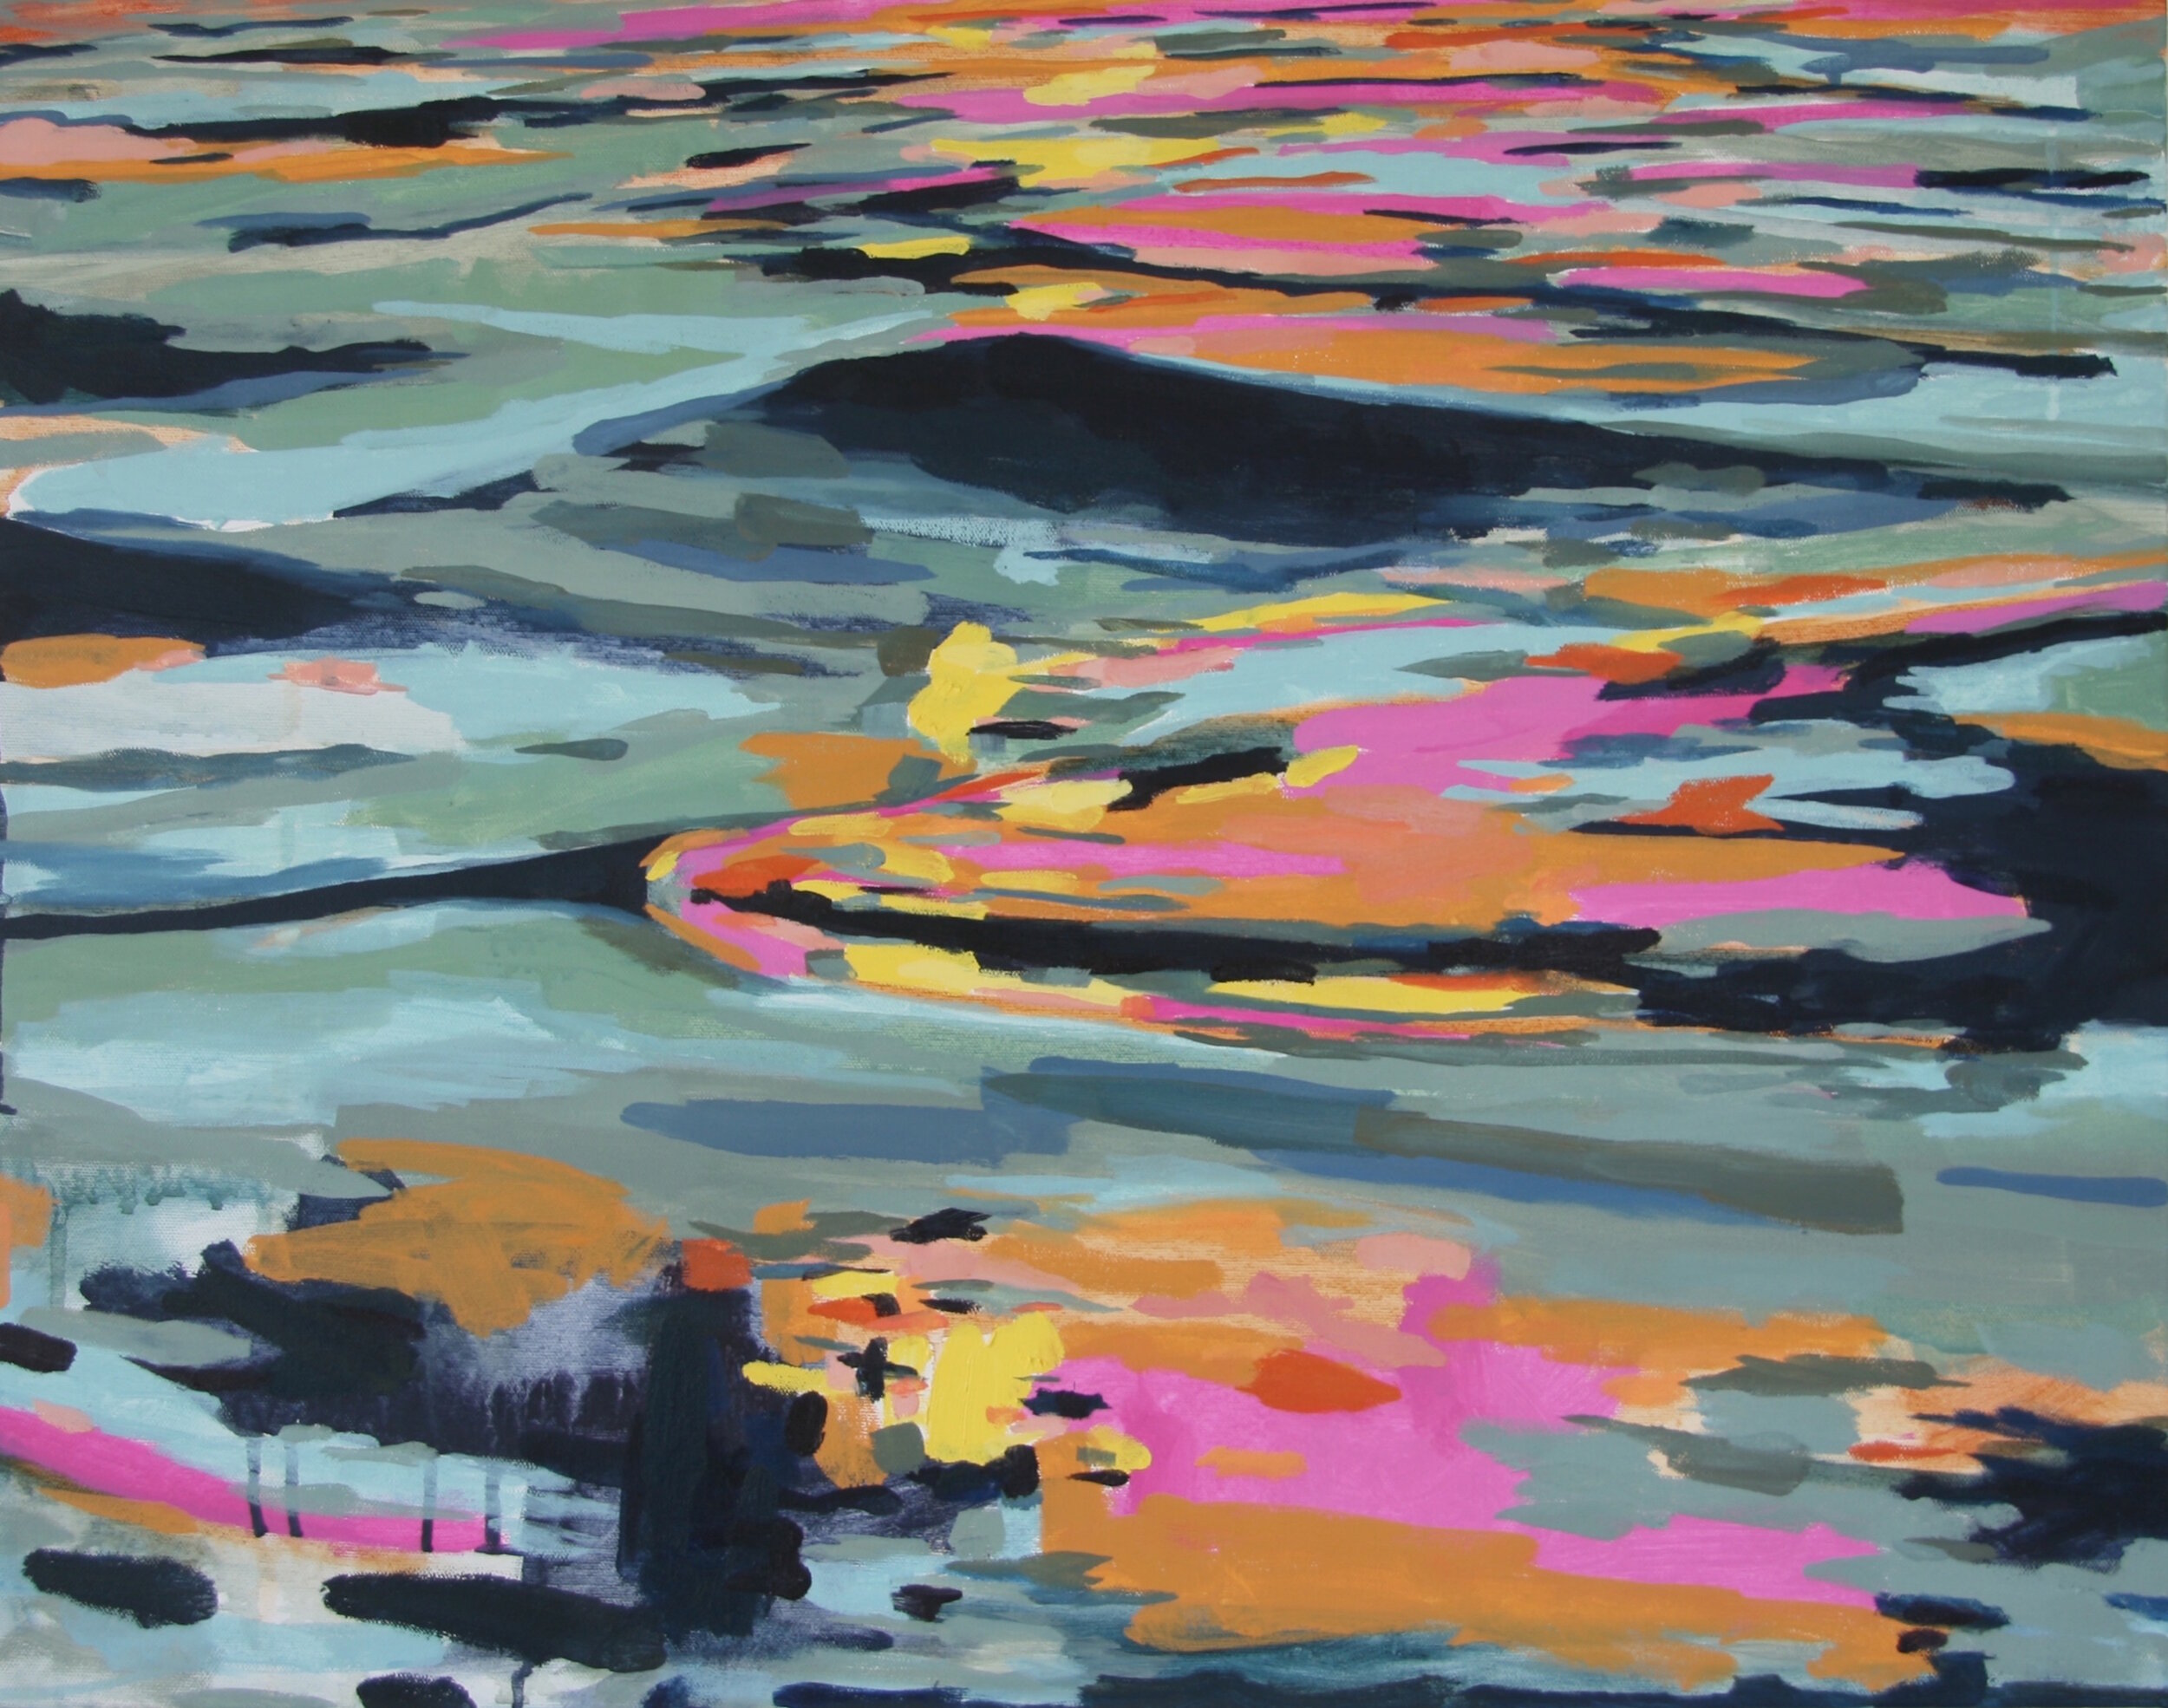 """'Swell'  2014  28"""" x 22""""  water soluble oil on canvas  sold"""